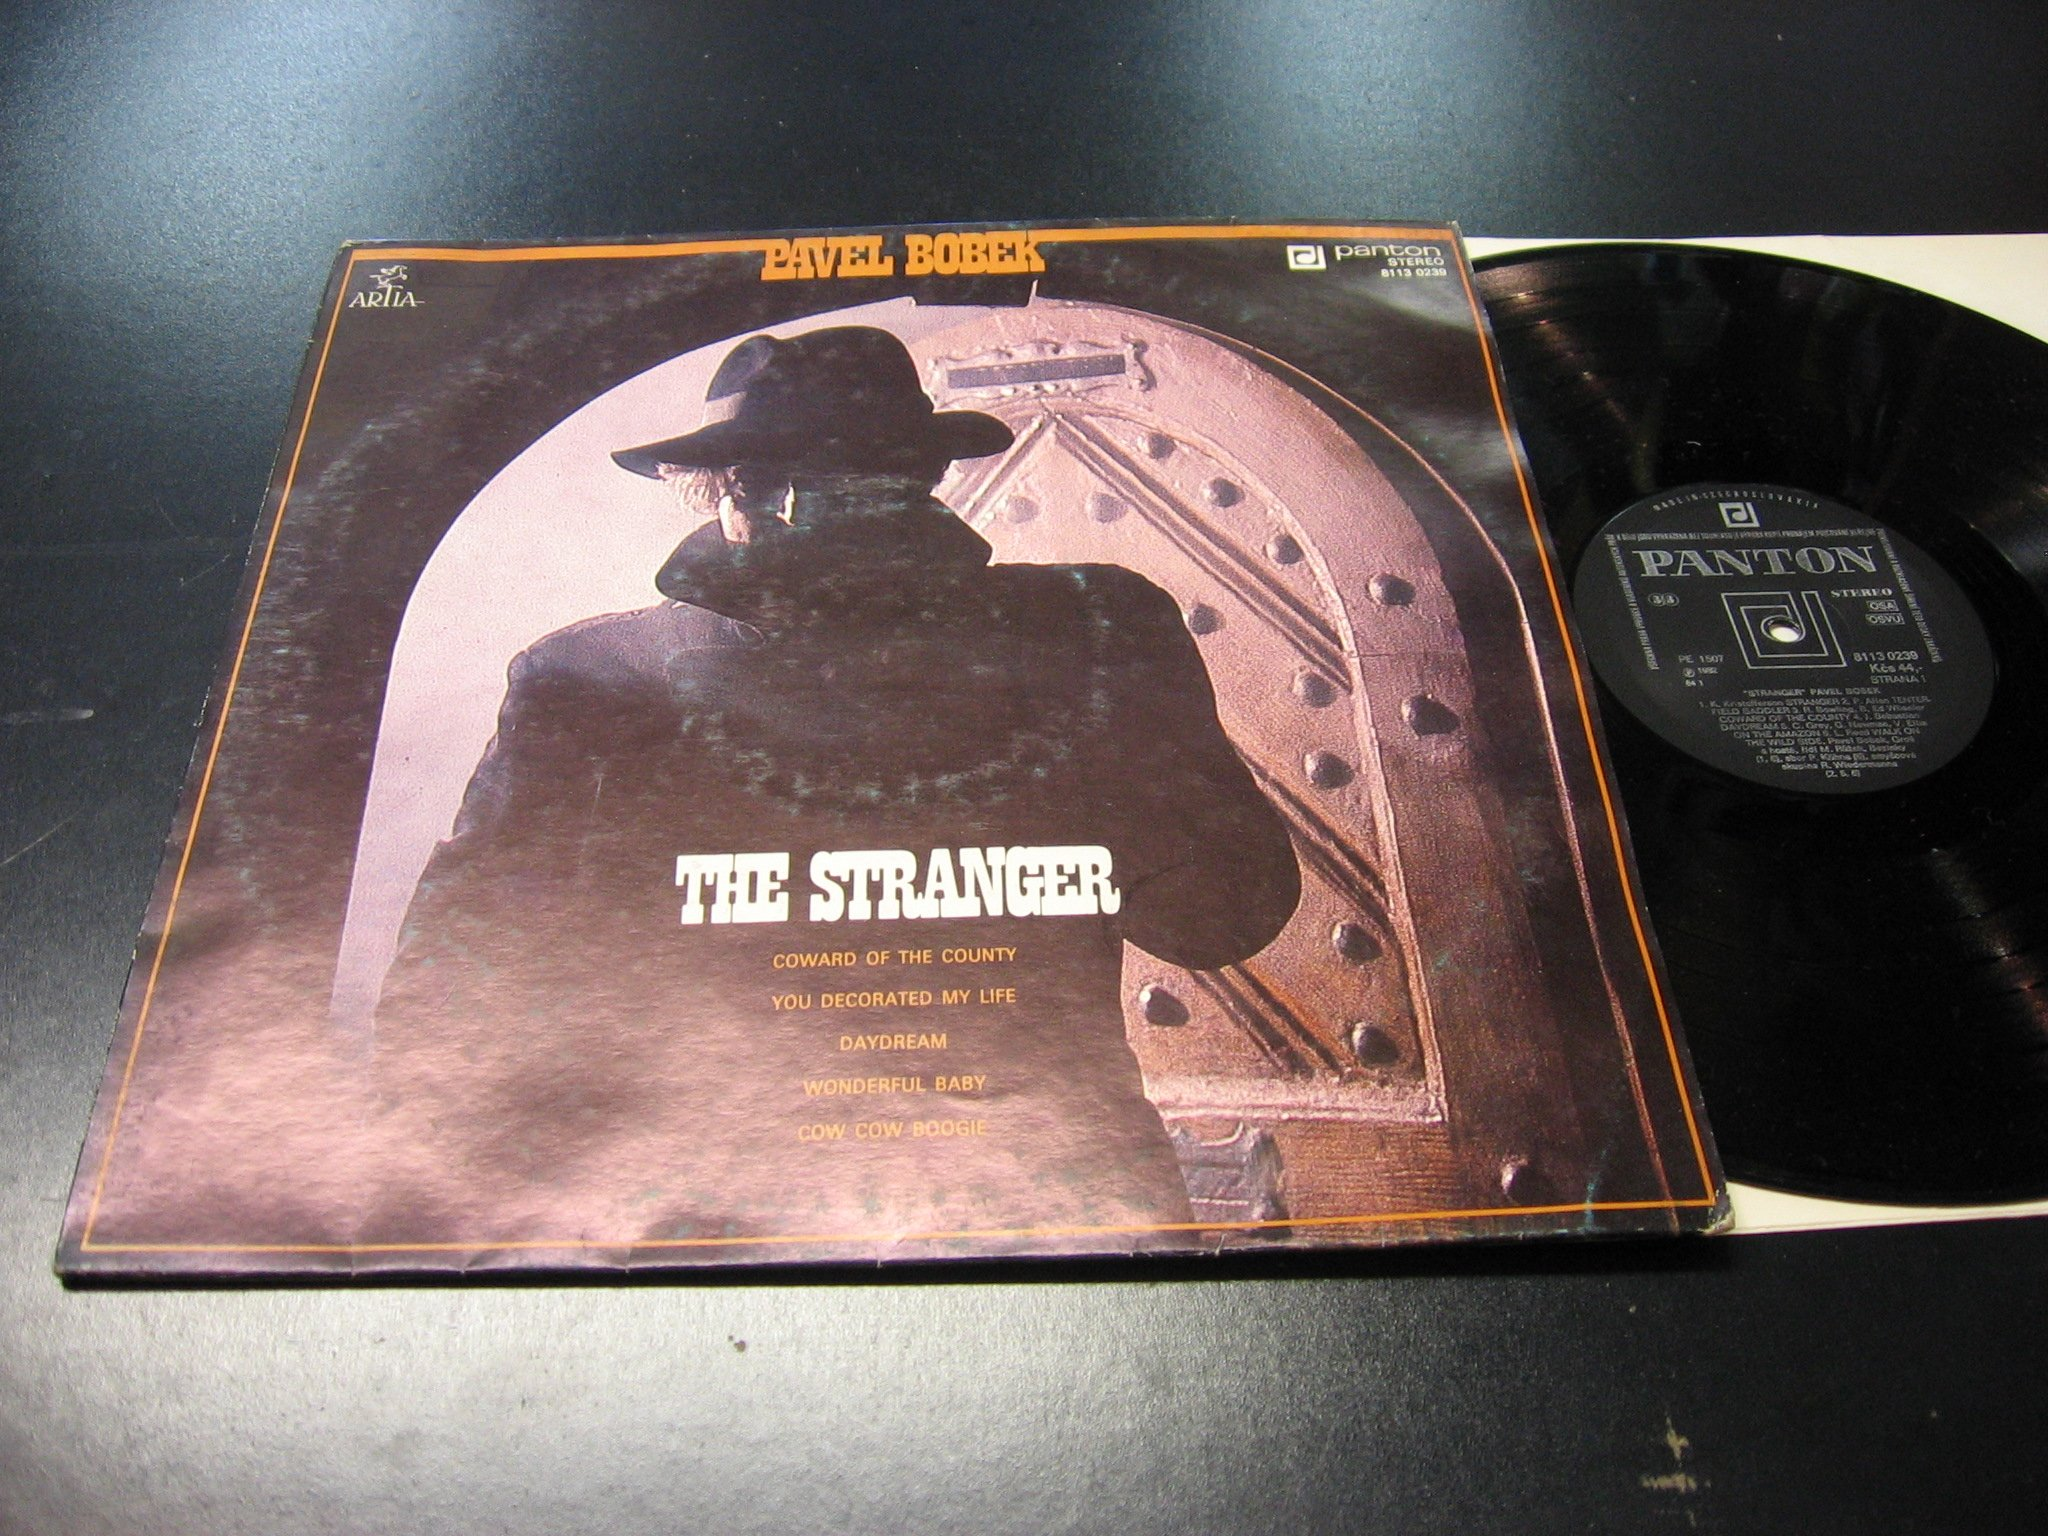 PAVEL BOBEK - THE STRANGER - LP - Opole